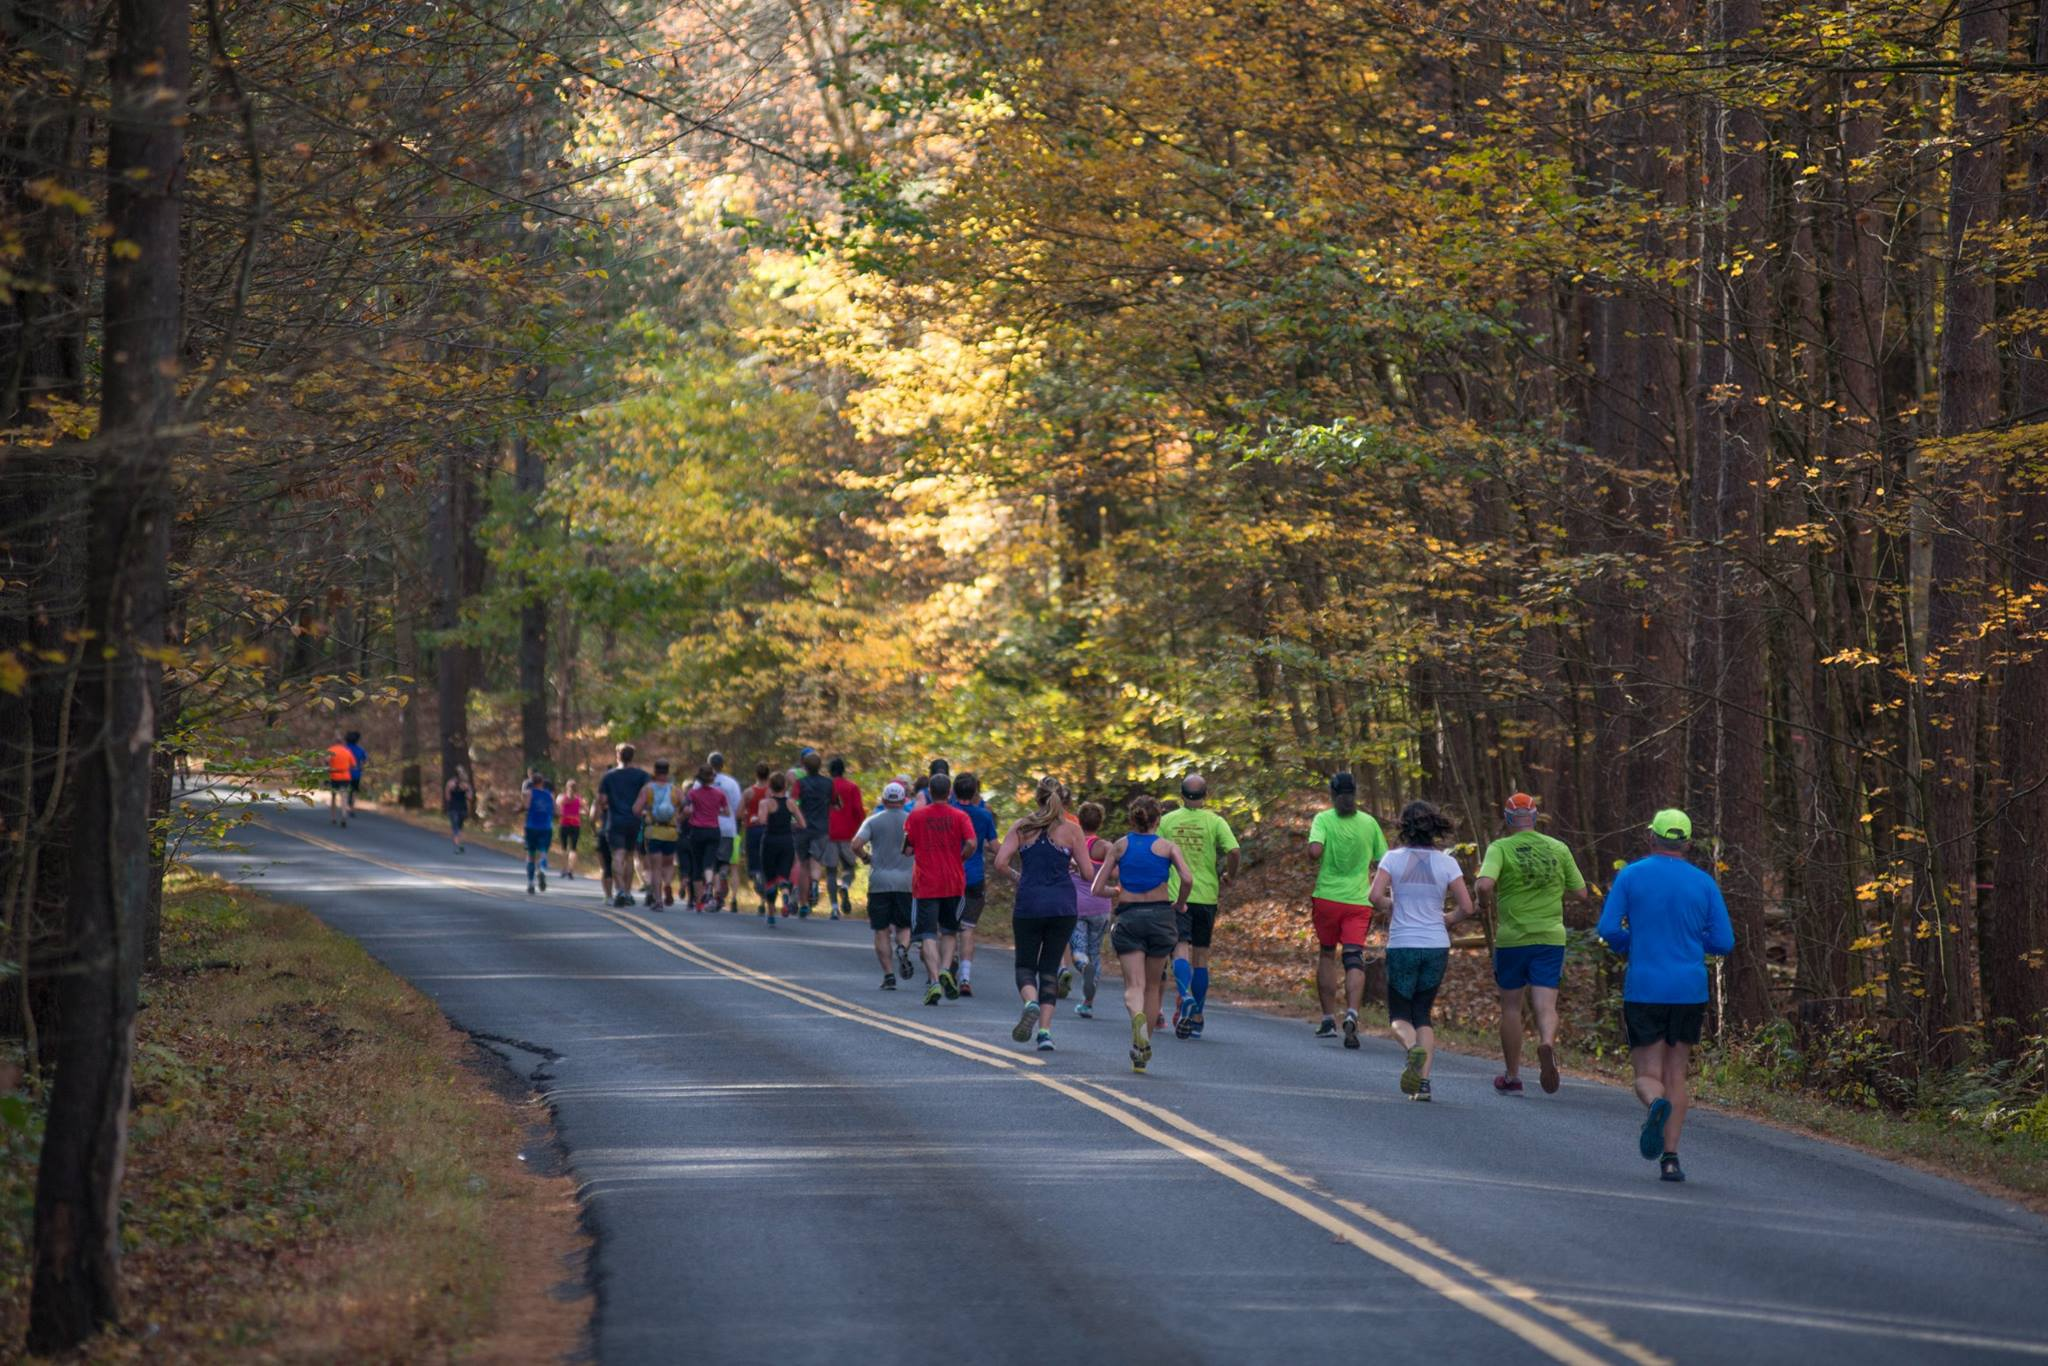 aN AWESOMELY SCENIC course - Run amongst peak fall foliage with aid stations every 2-3 miles and ports potties on course.